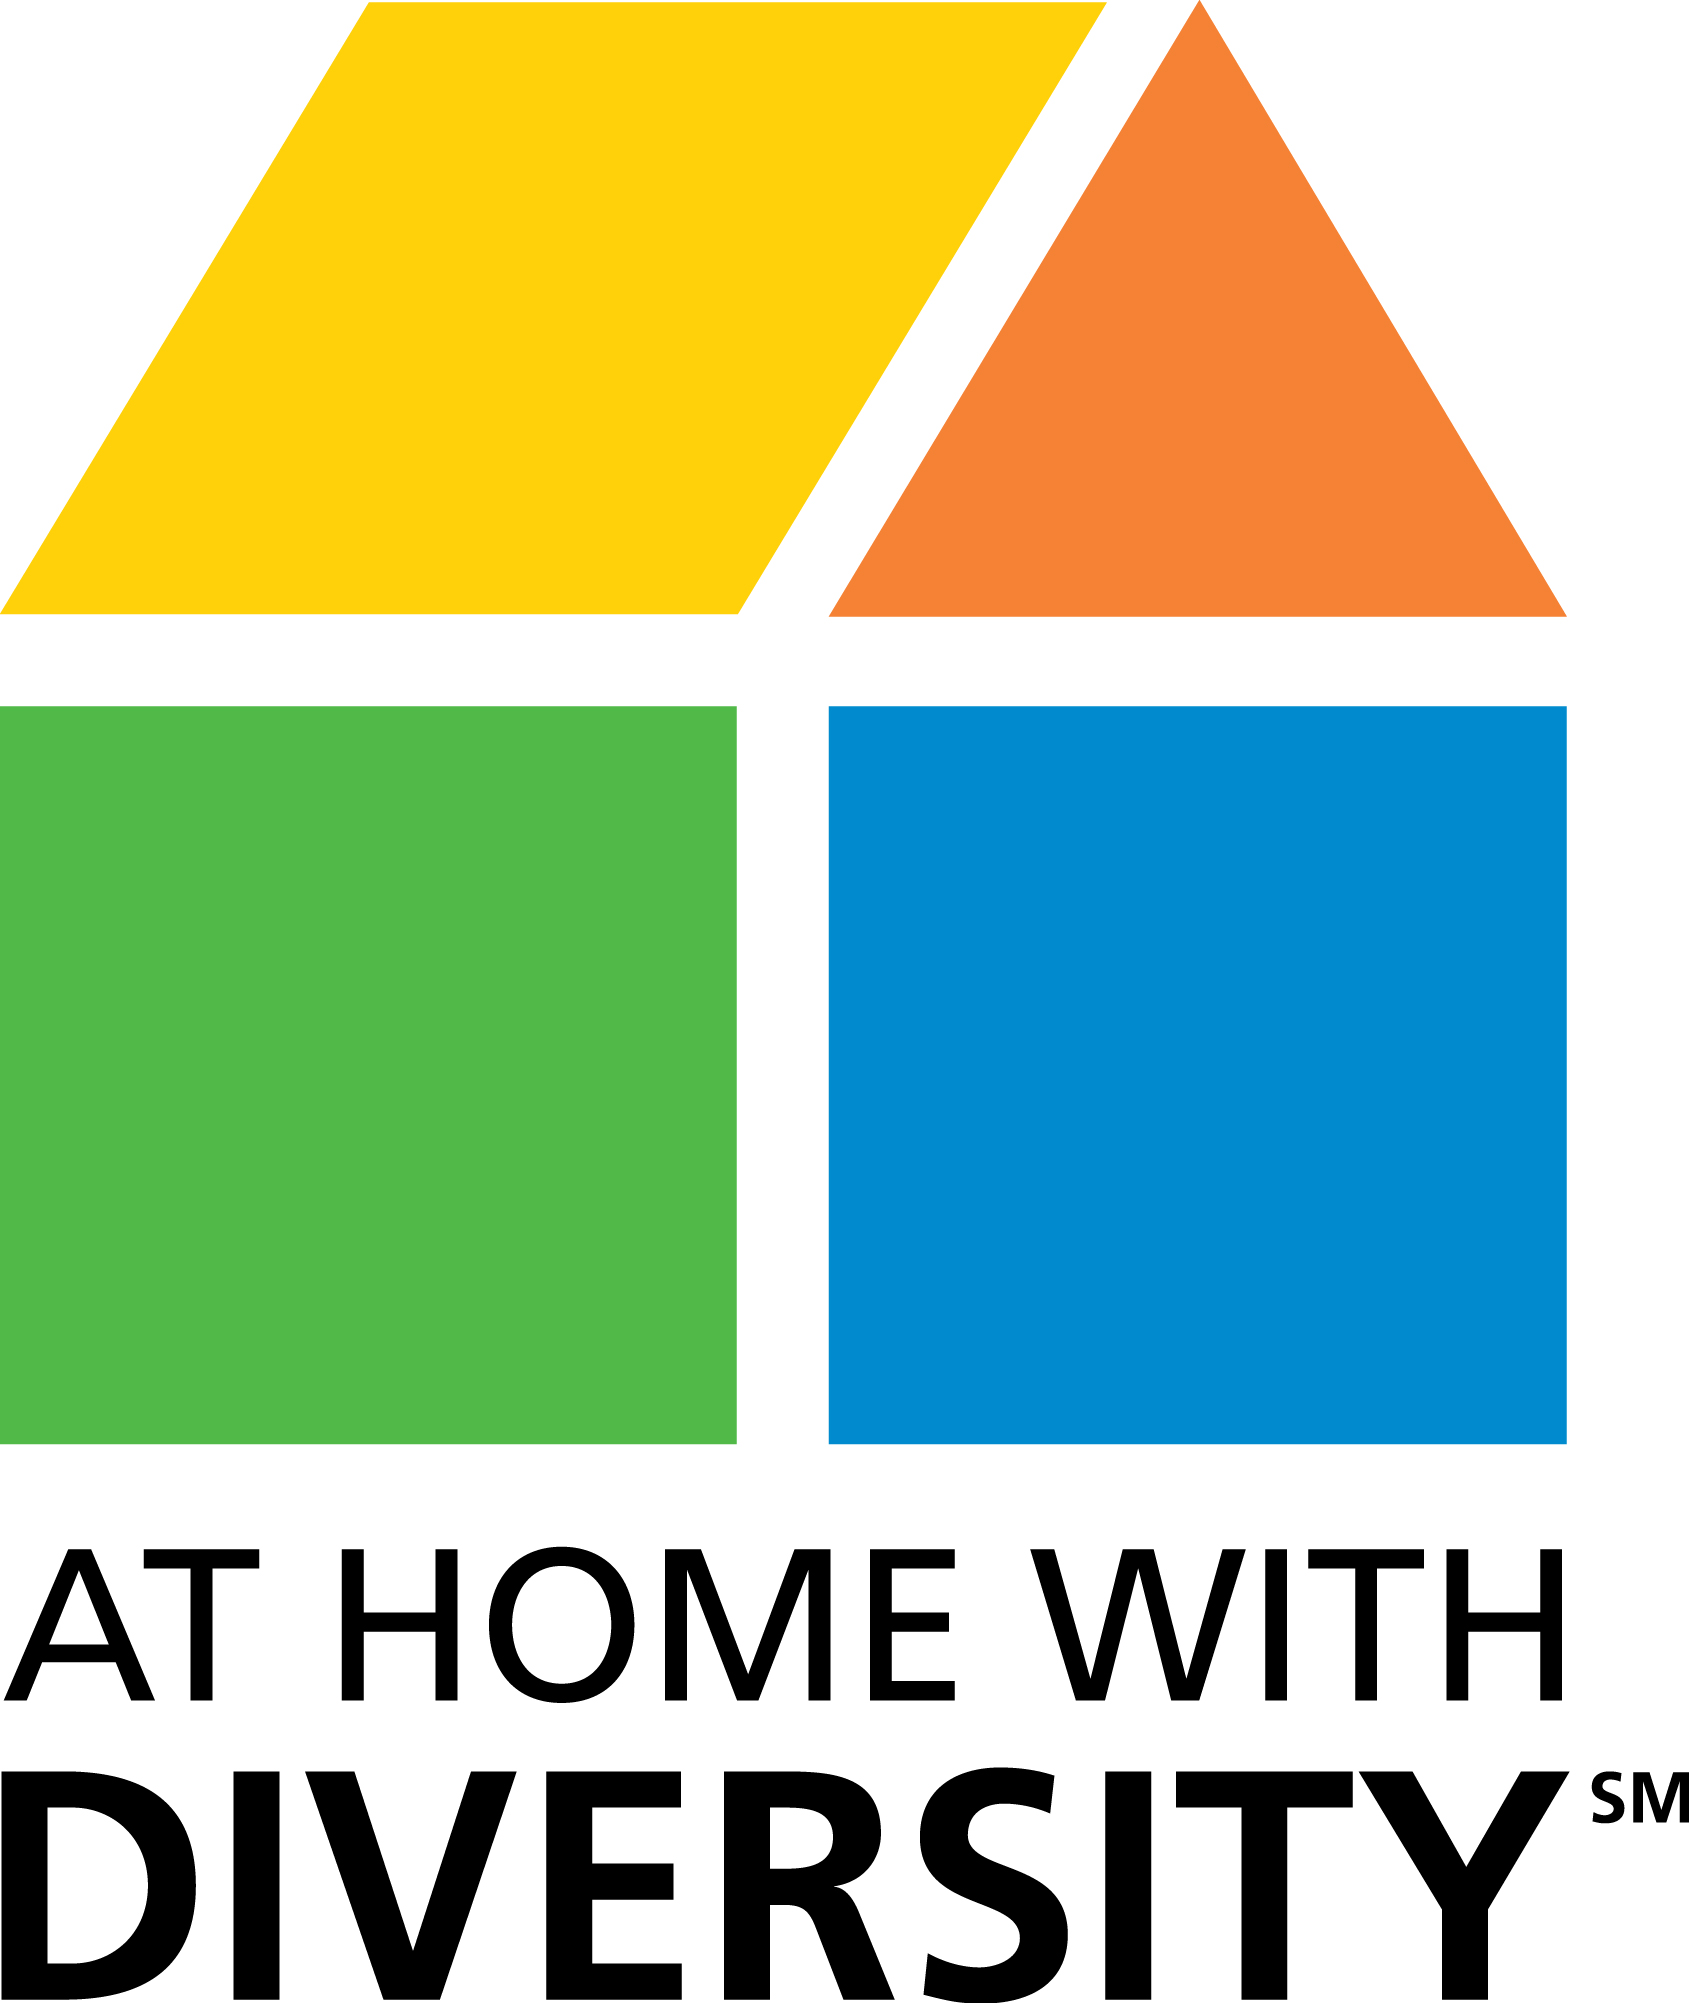 http://www.realtor.org/sites/default/files/images/logos/NAR/At-Home-with-Diversity-Logo-web.jpg